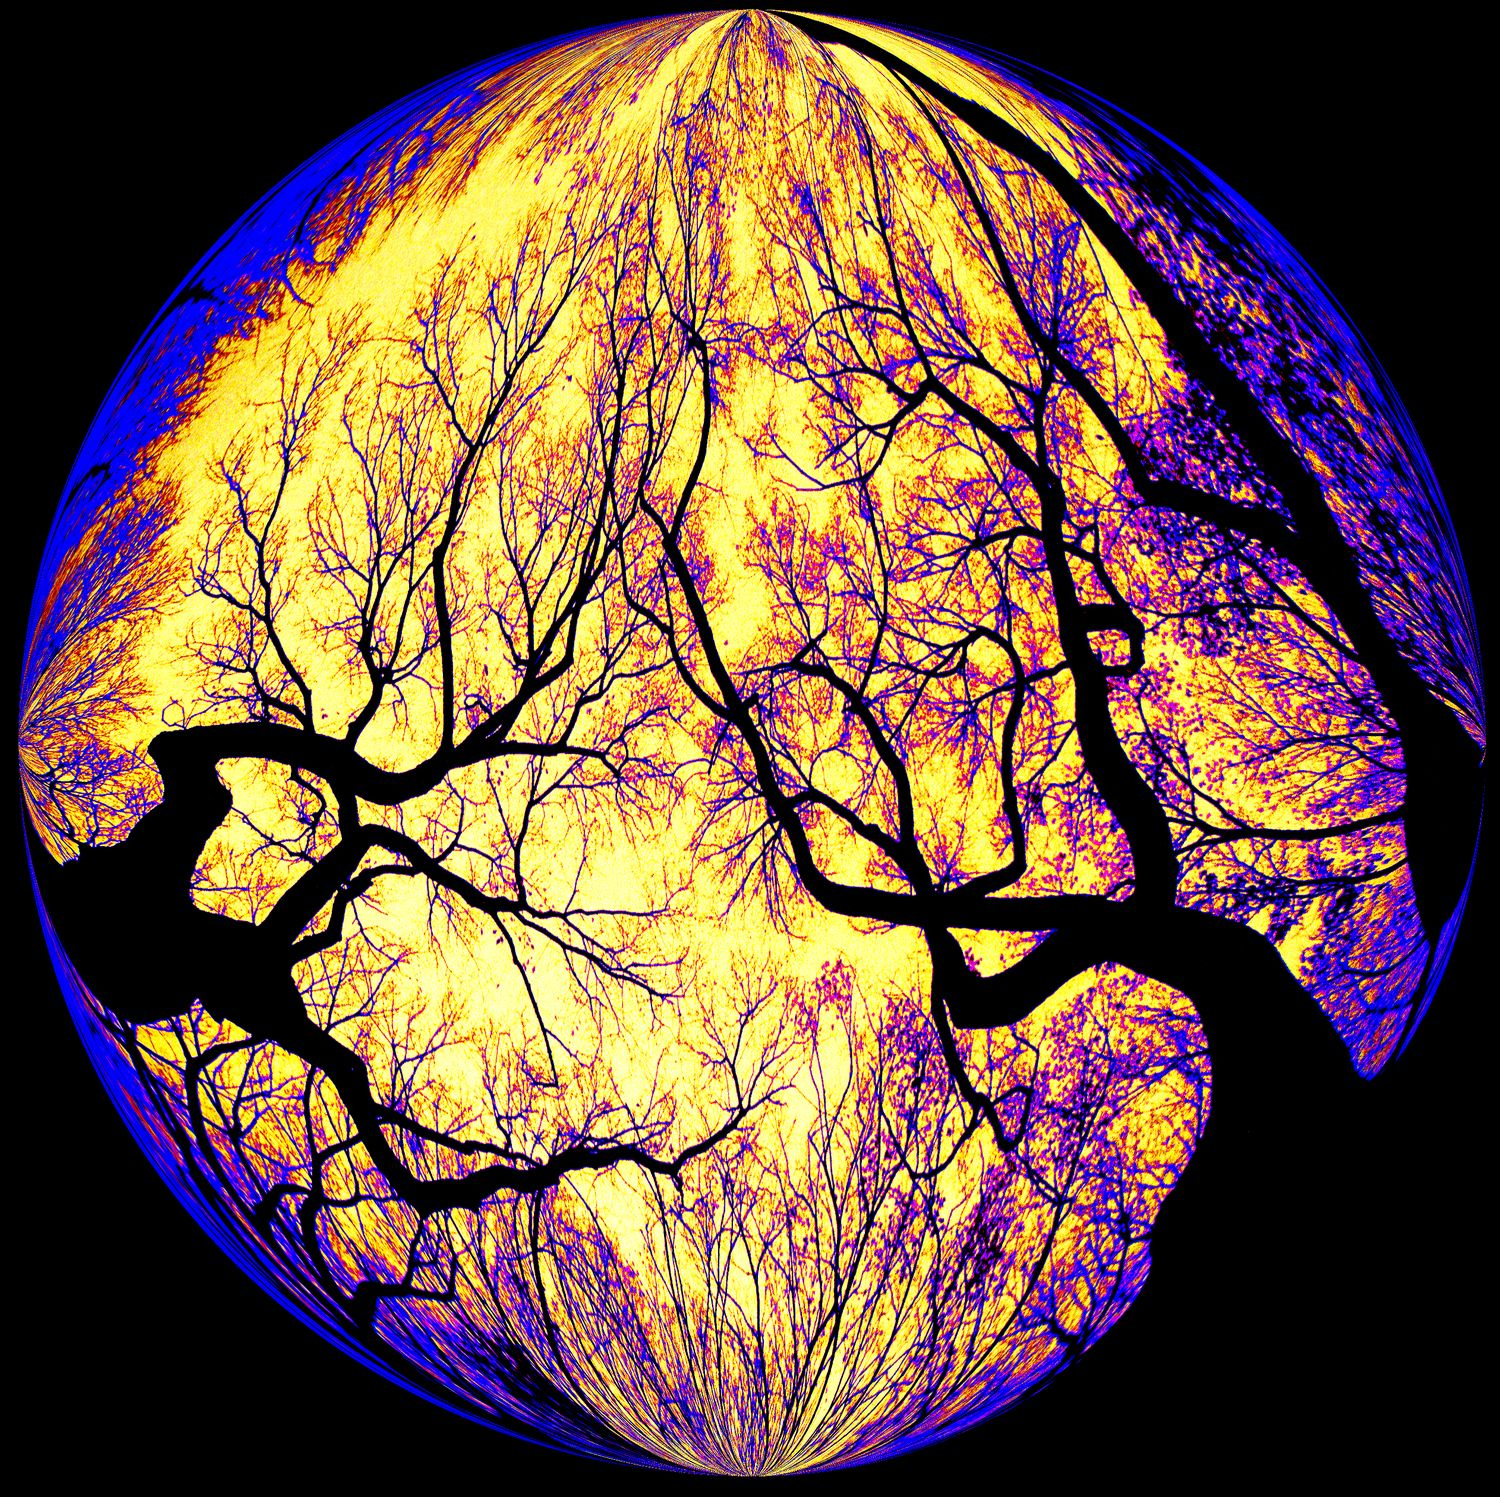 -  Haunted trees inside a bubble - Bubble Pictures - made with Wilkington-Smythe